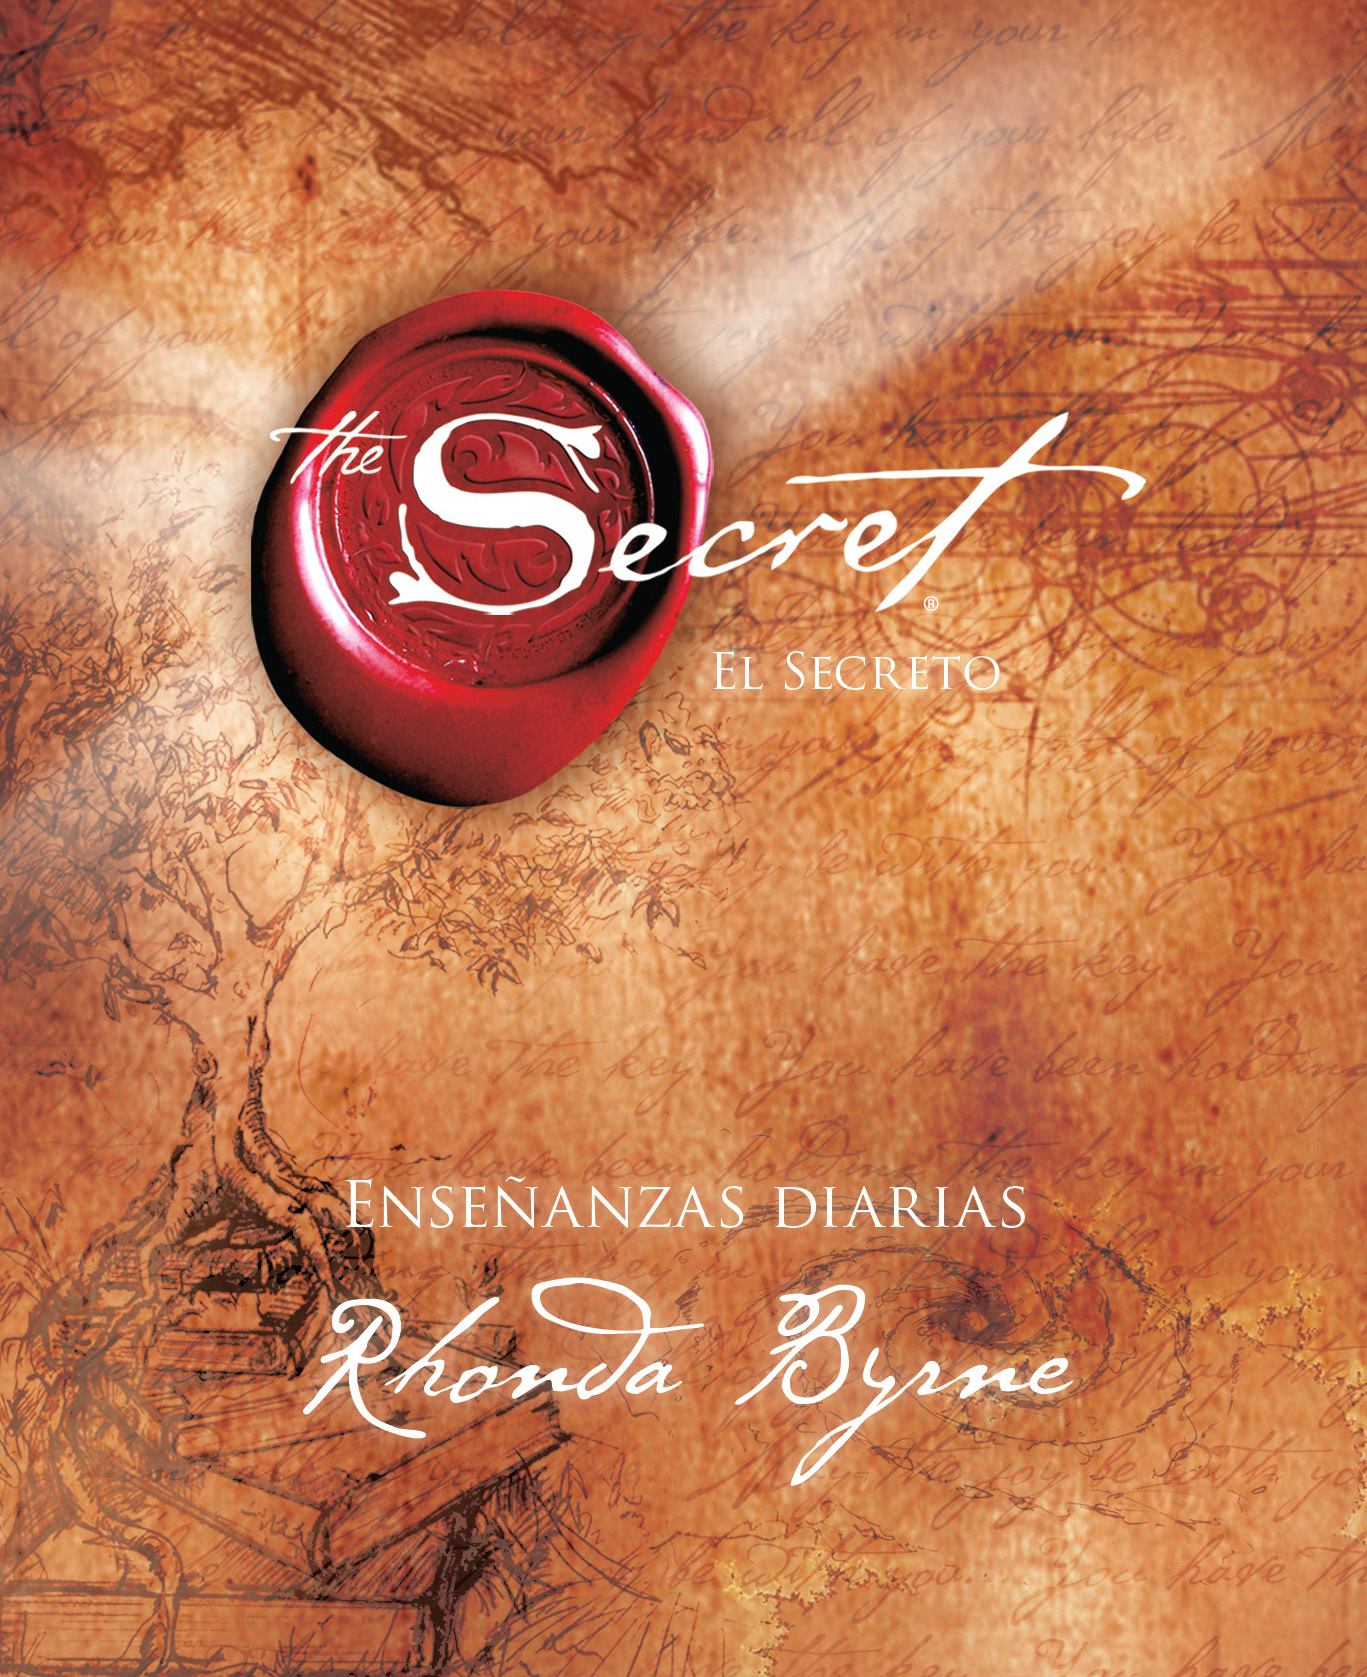 Libro El Secreto Rhonda Byrne Descargar Gratis El Secreto Enseñanzas Diarias Secret Daily Teachings Spanish